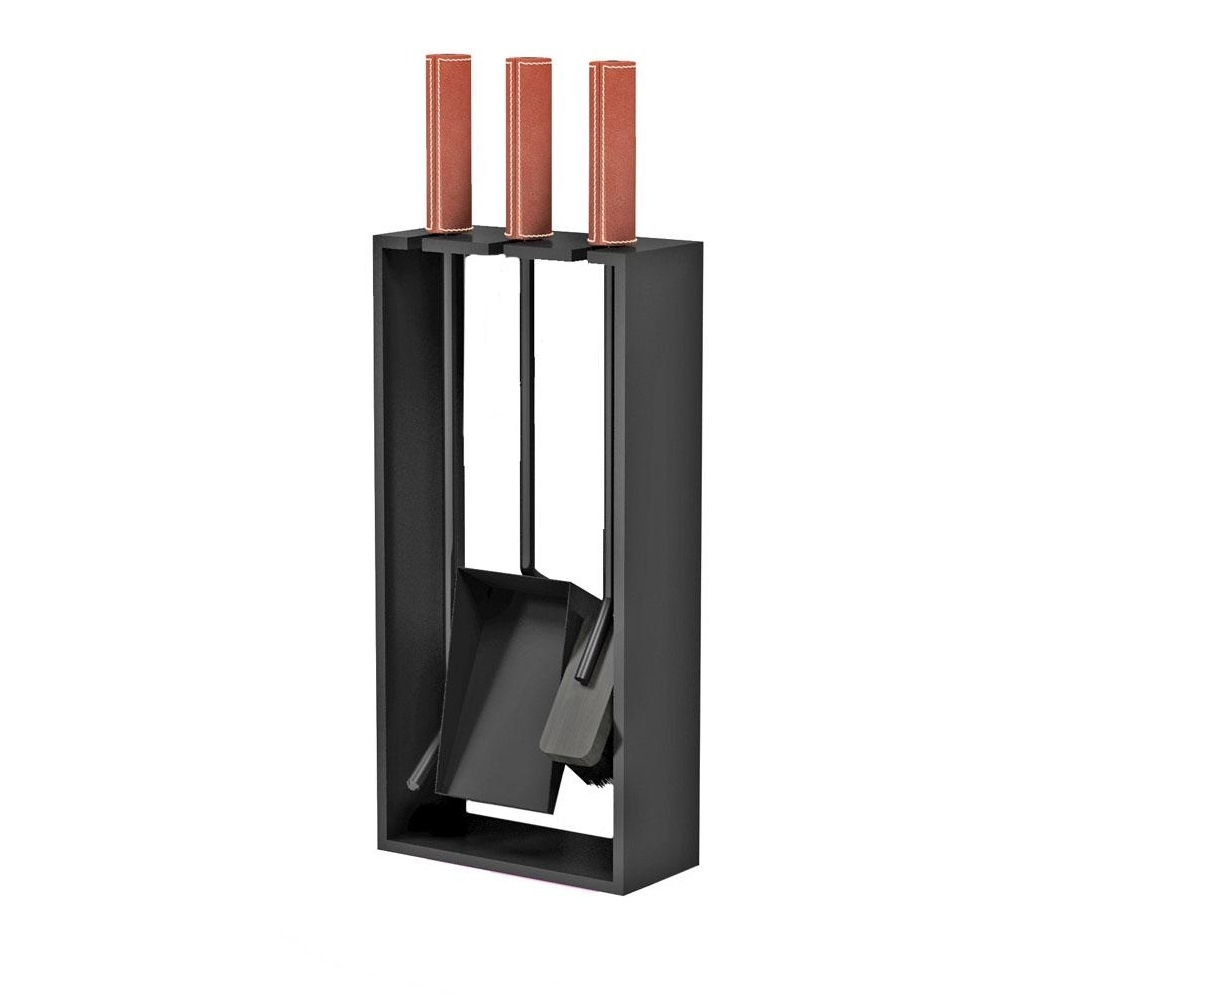 Leather handle optional